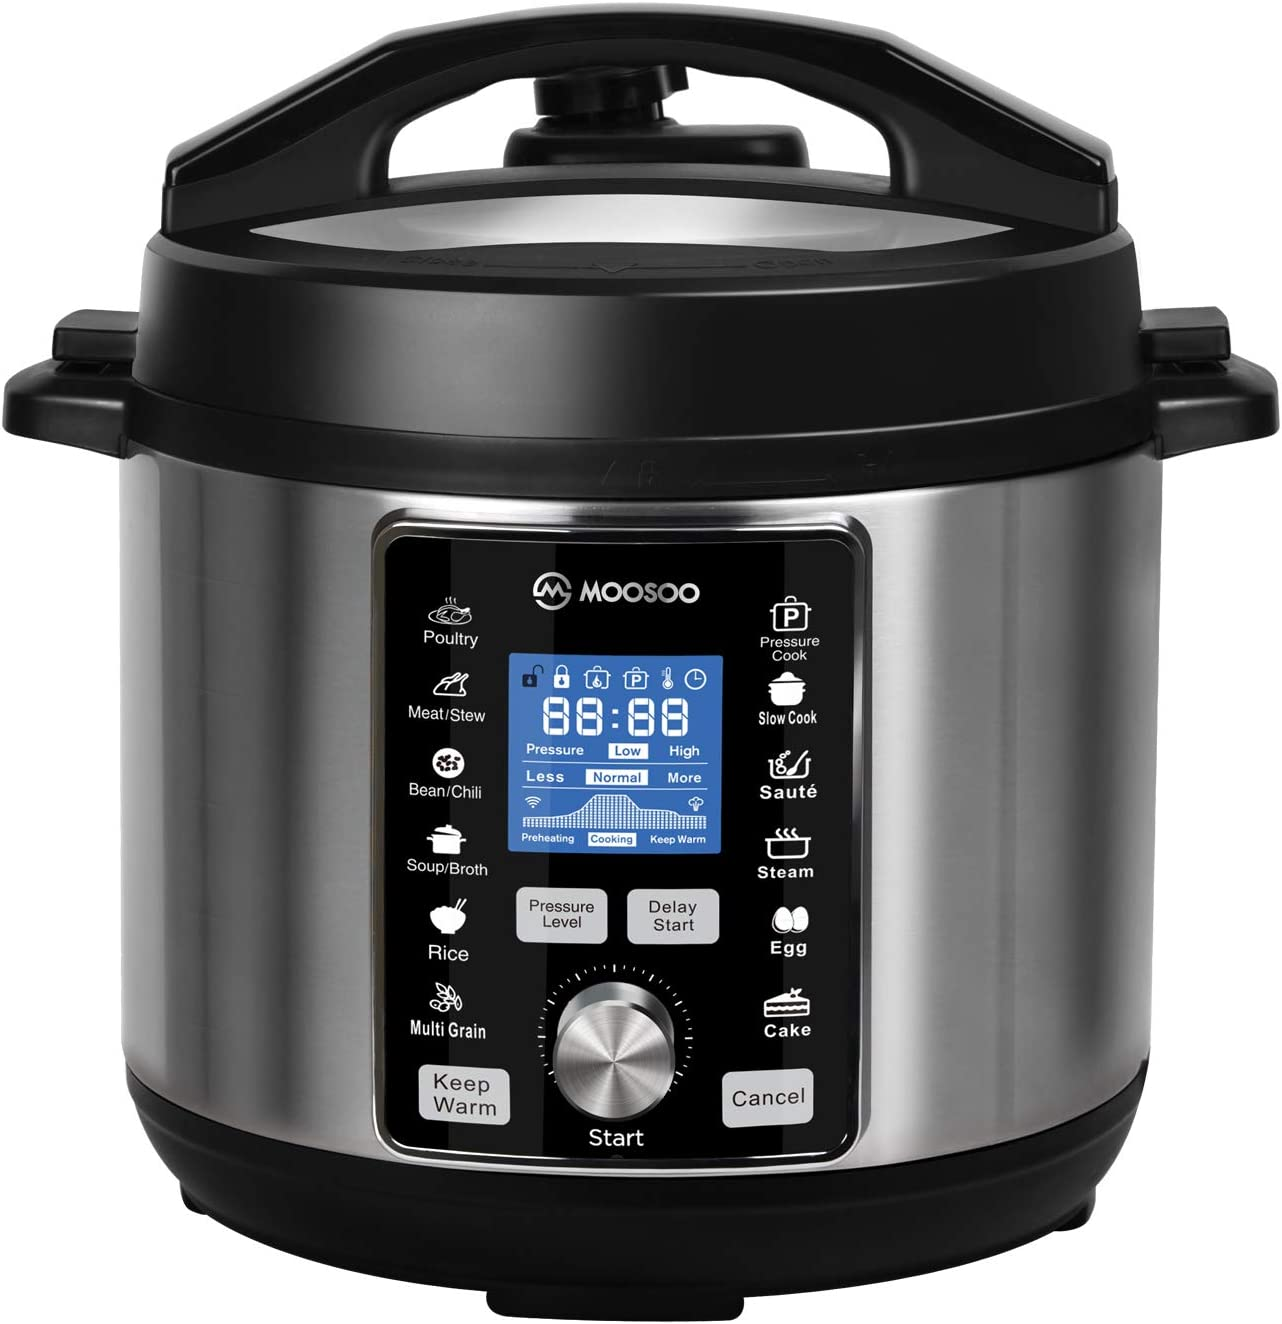 MOOSOO 12-in-1 Electric Pressure Cooker, 6QT Instant One-Touch Pressure Pot, Stain-Resistant Pressure Cooker, Slow Cooker, Steamer, Saute, Yogurt Maker, Egg Cooker, with ETL Certified, 11+ Accessories and Recipes